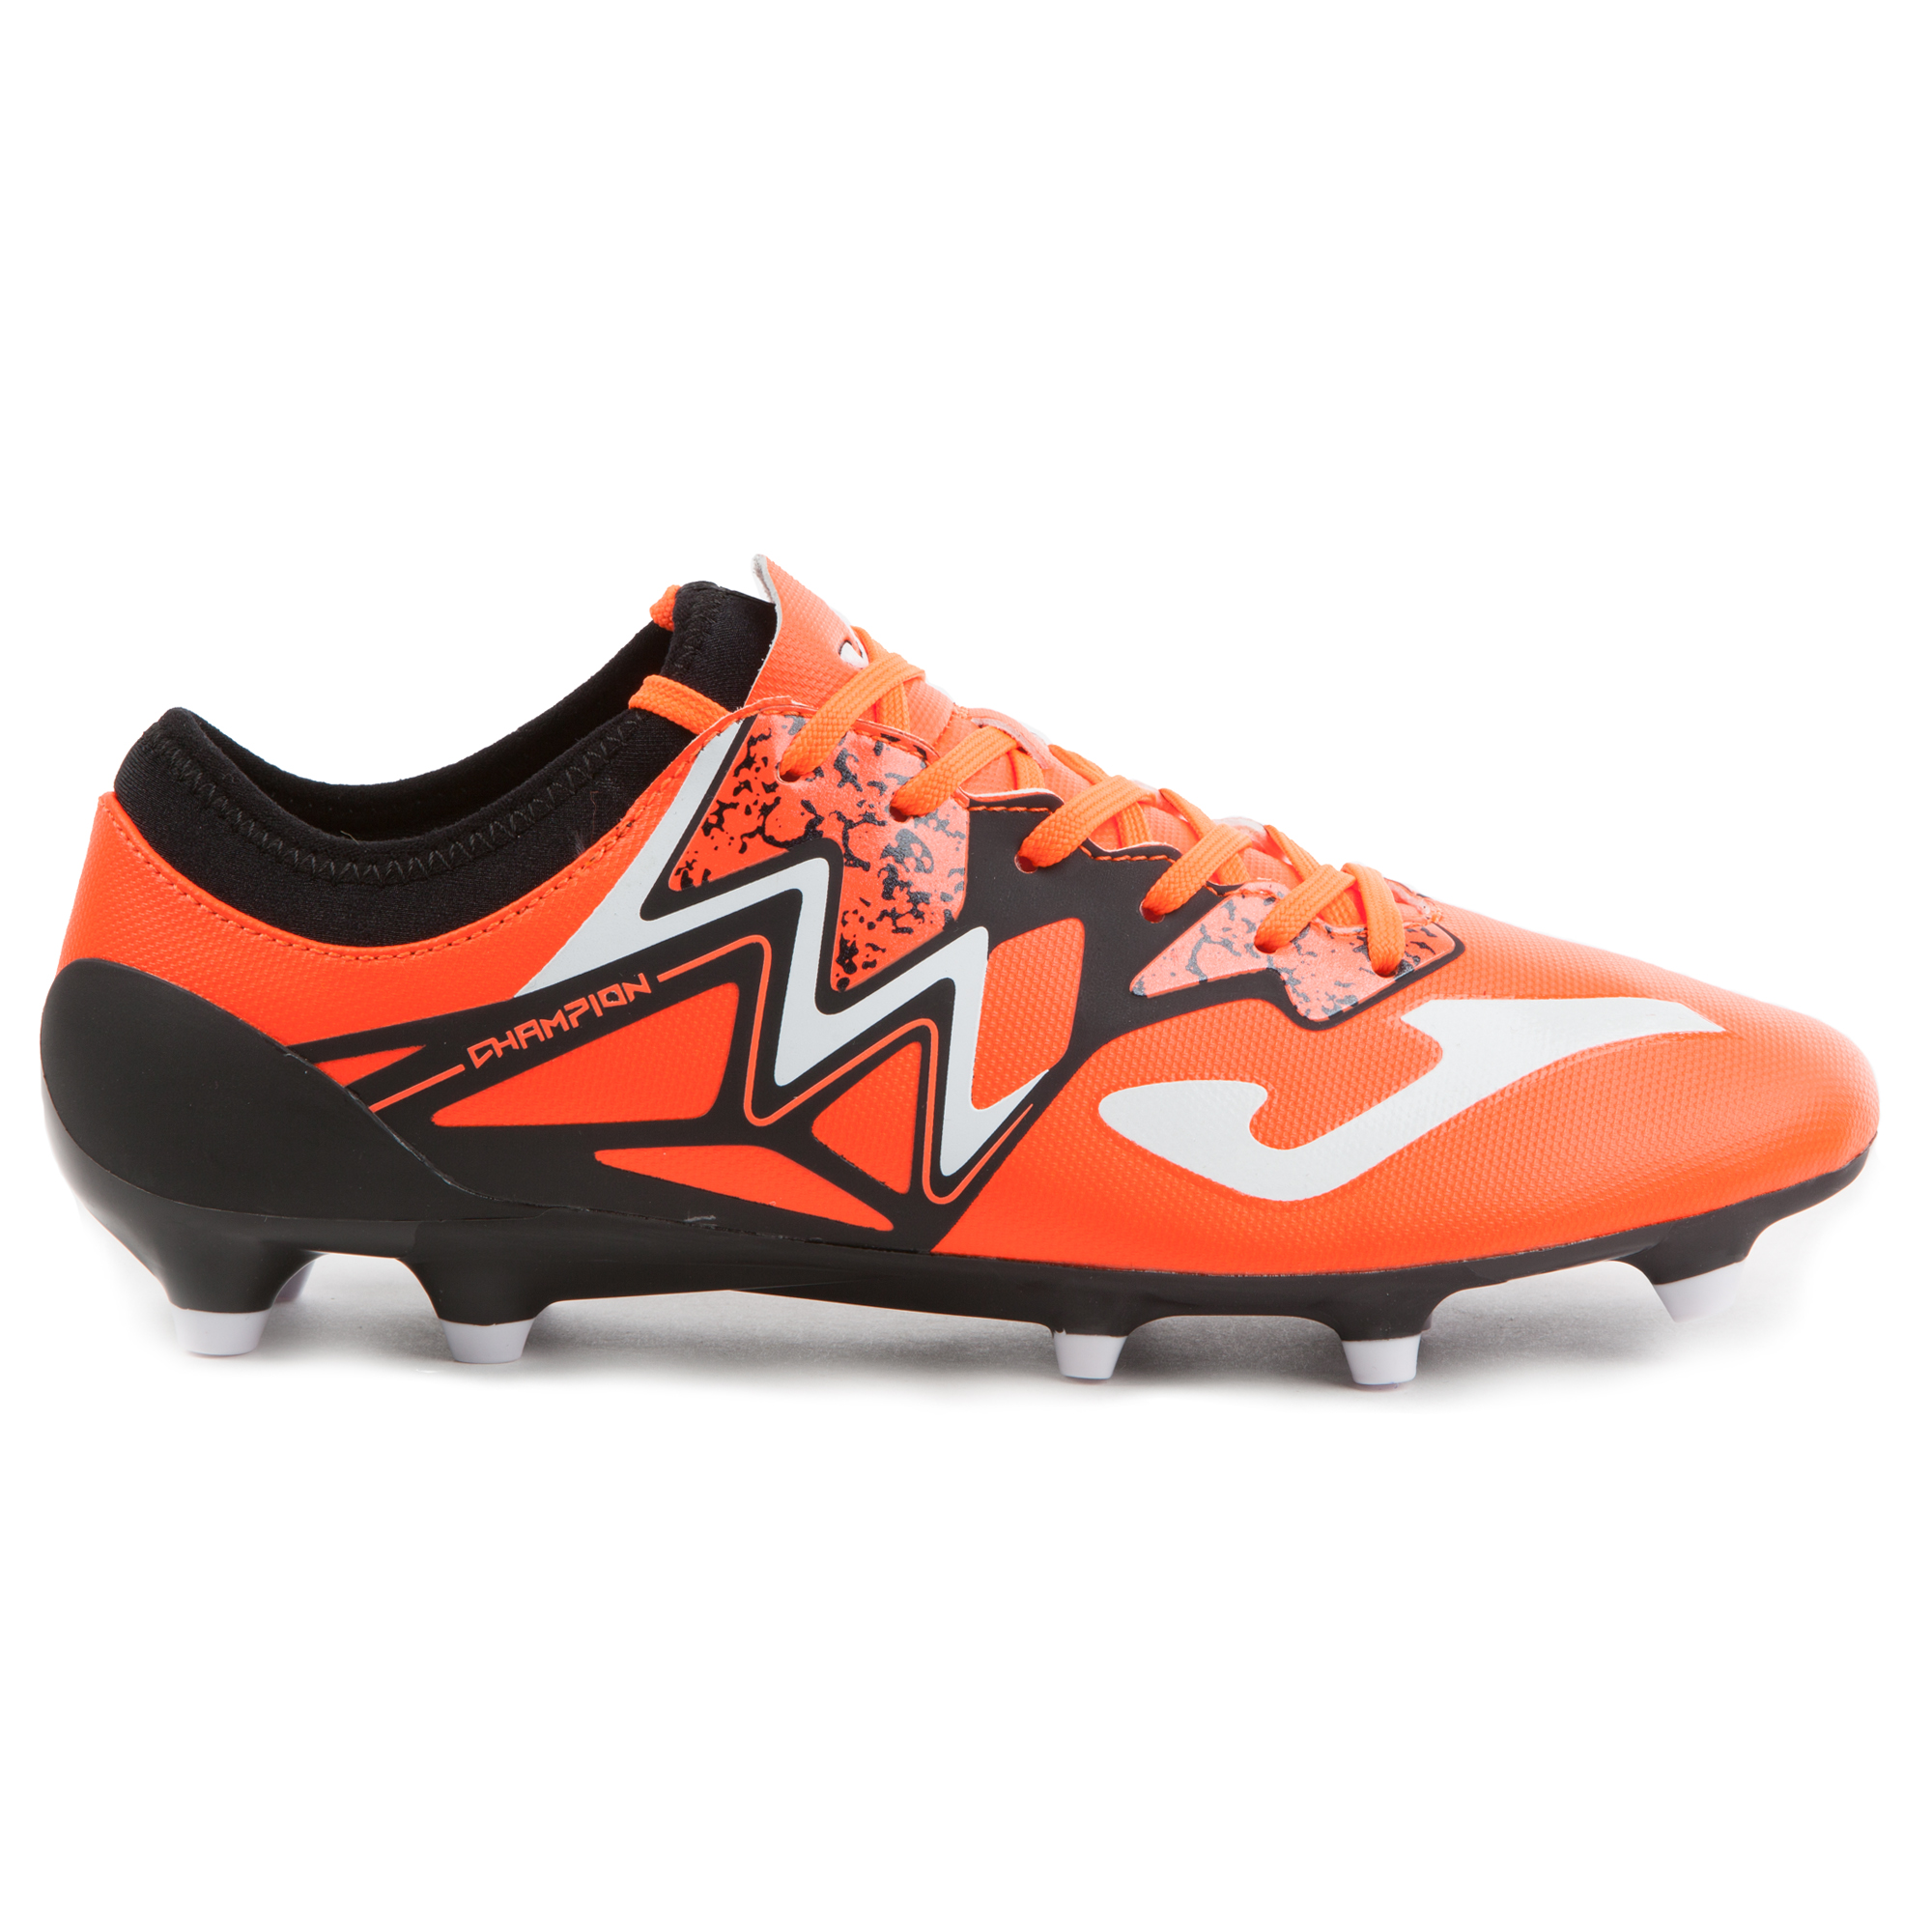 d4e74c44d2d CHAMPION MAX 708 BRIGHT ORANGE FIRM GROUND - 1 ...